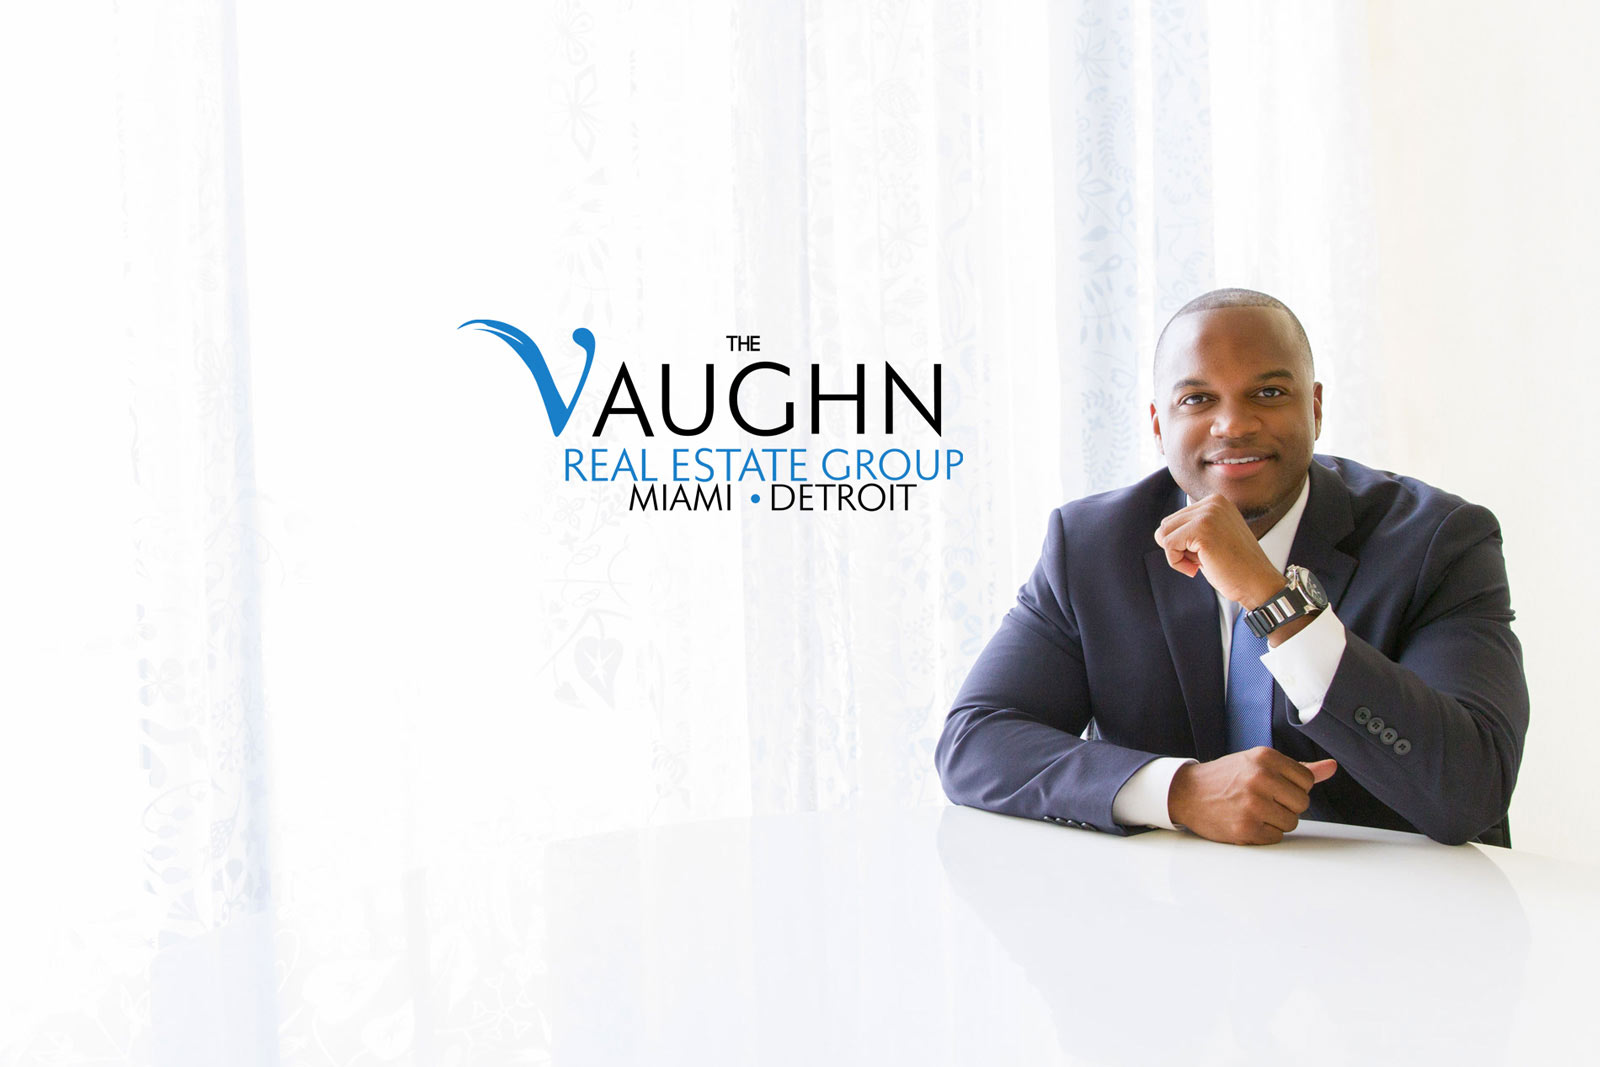 Miami Real Estate Agent Alex Vaughn of the Vaughn Real Estate Group